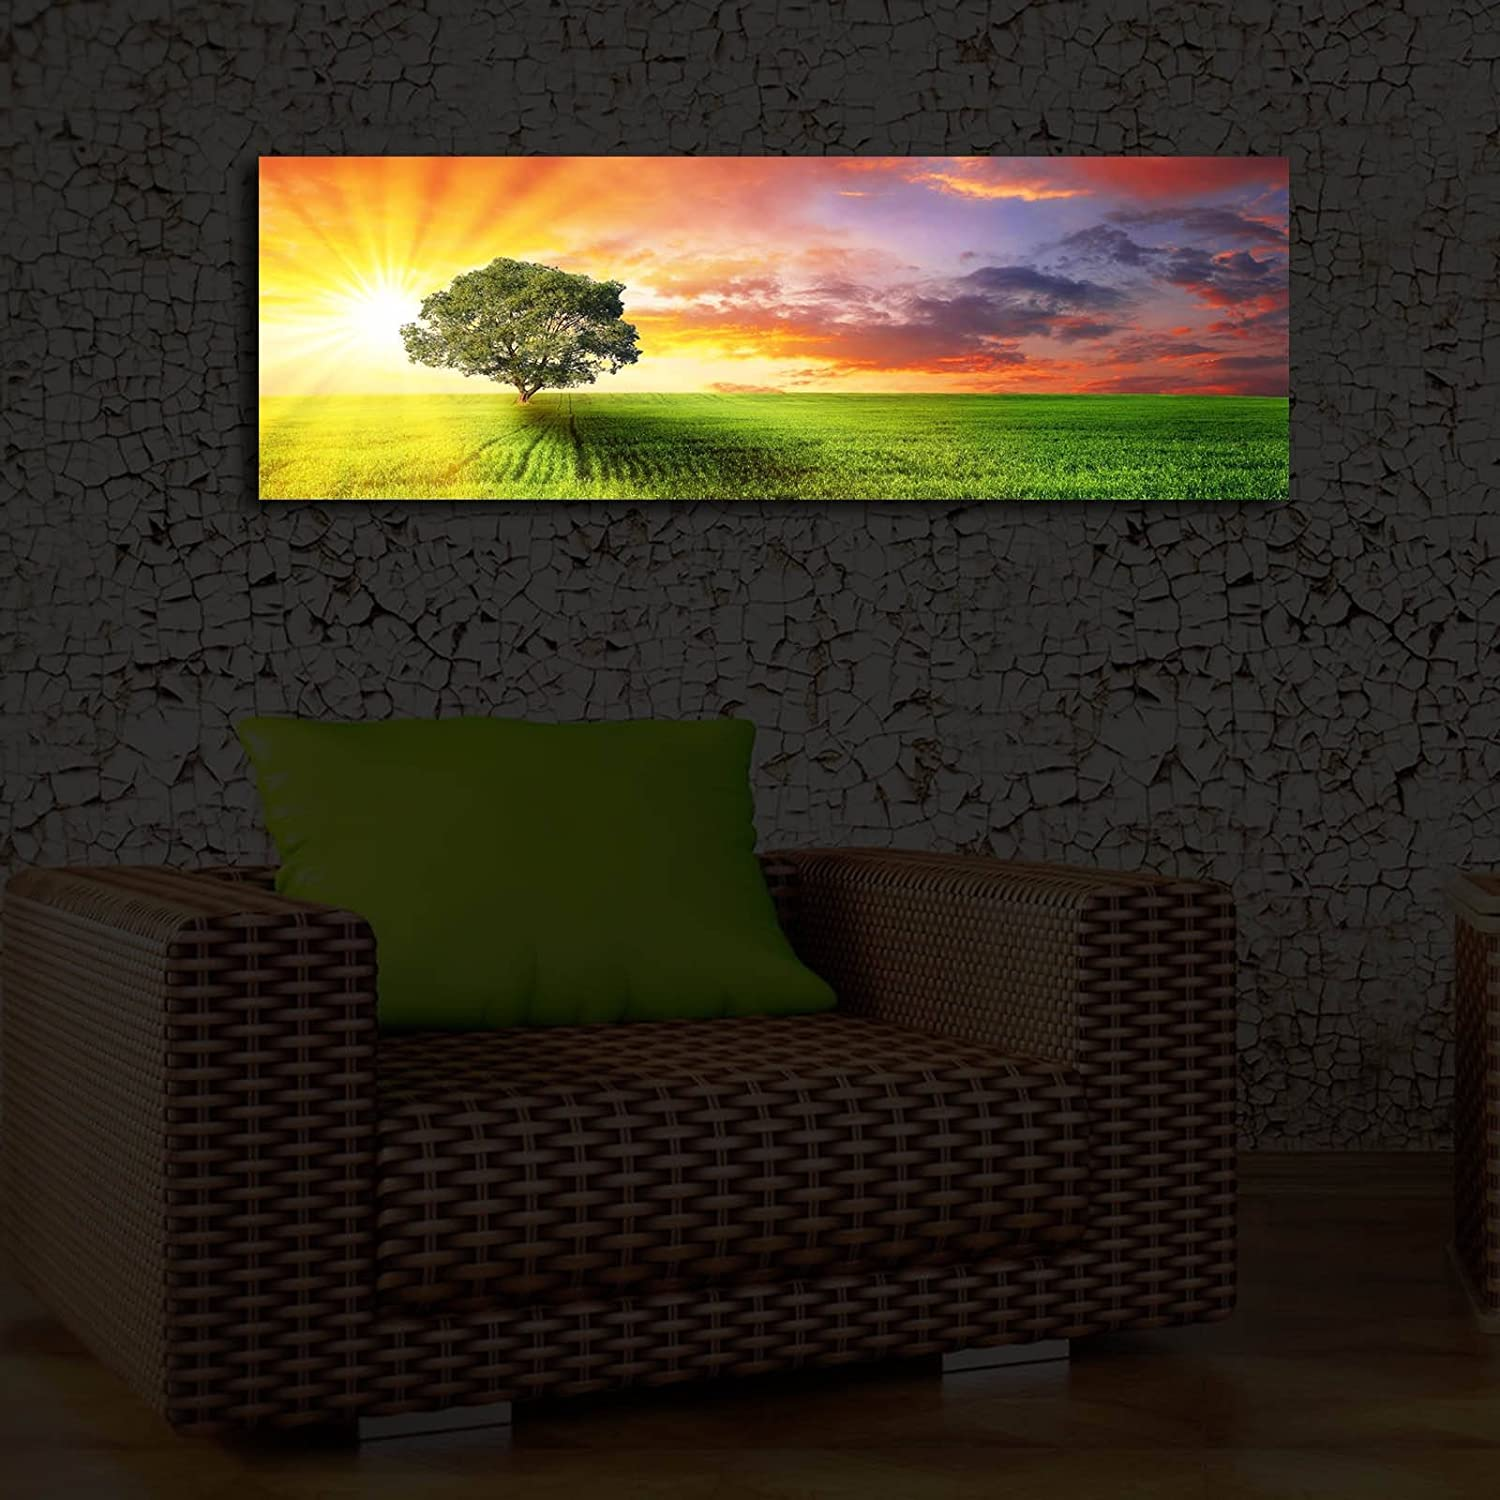 """LaModaHome Decorative Canvas Wall Art (11.5"""" x 35"""") Wooden Thick Frame Painting/LED Light Inside Sky Cloud Tree Forest Nature Green Branch Spring 3090İACT-35 Multicolor"""